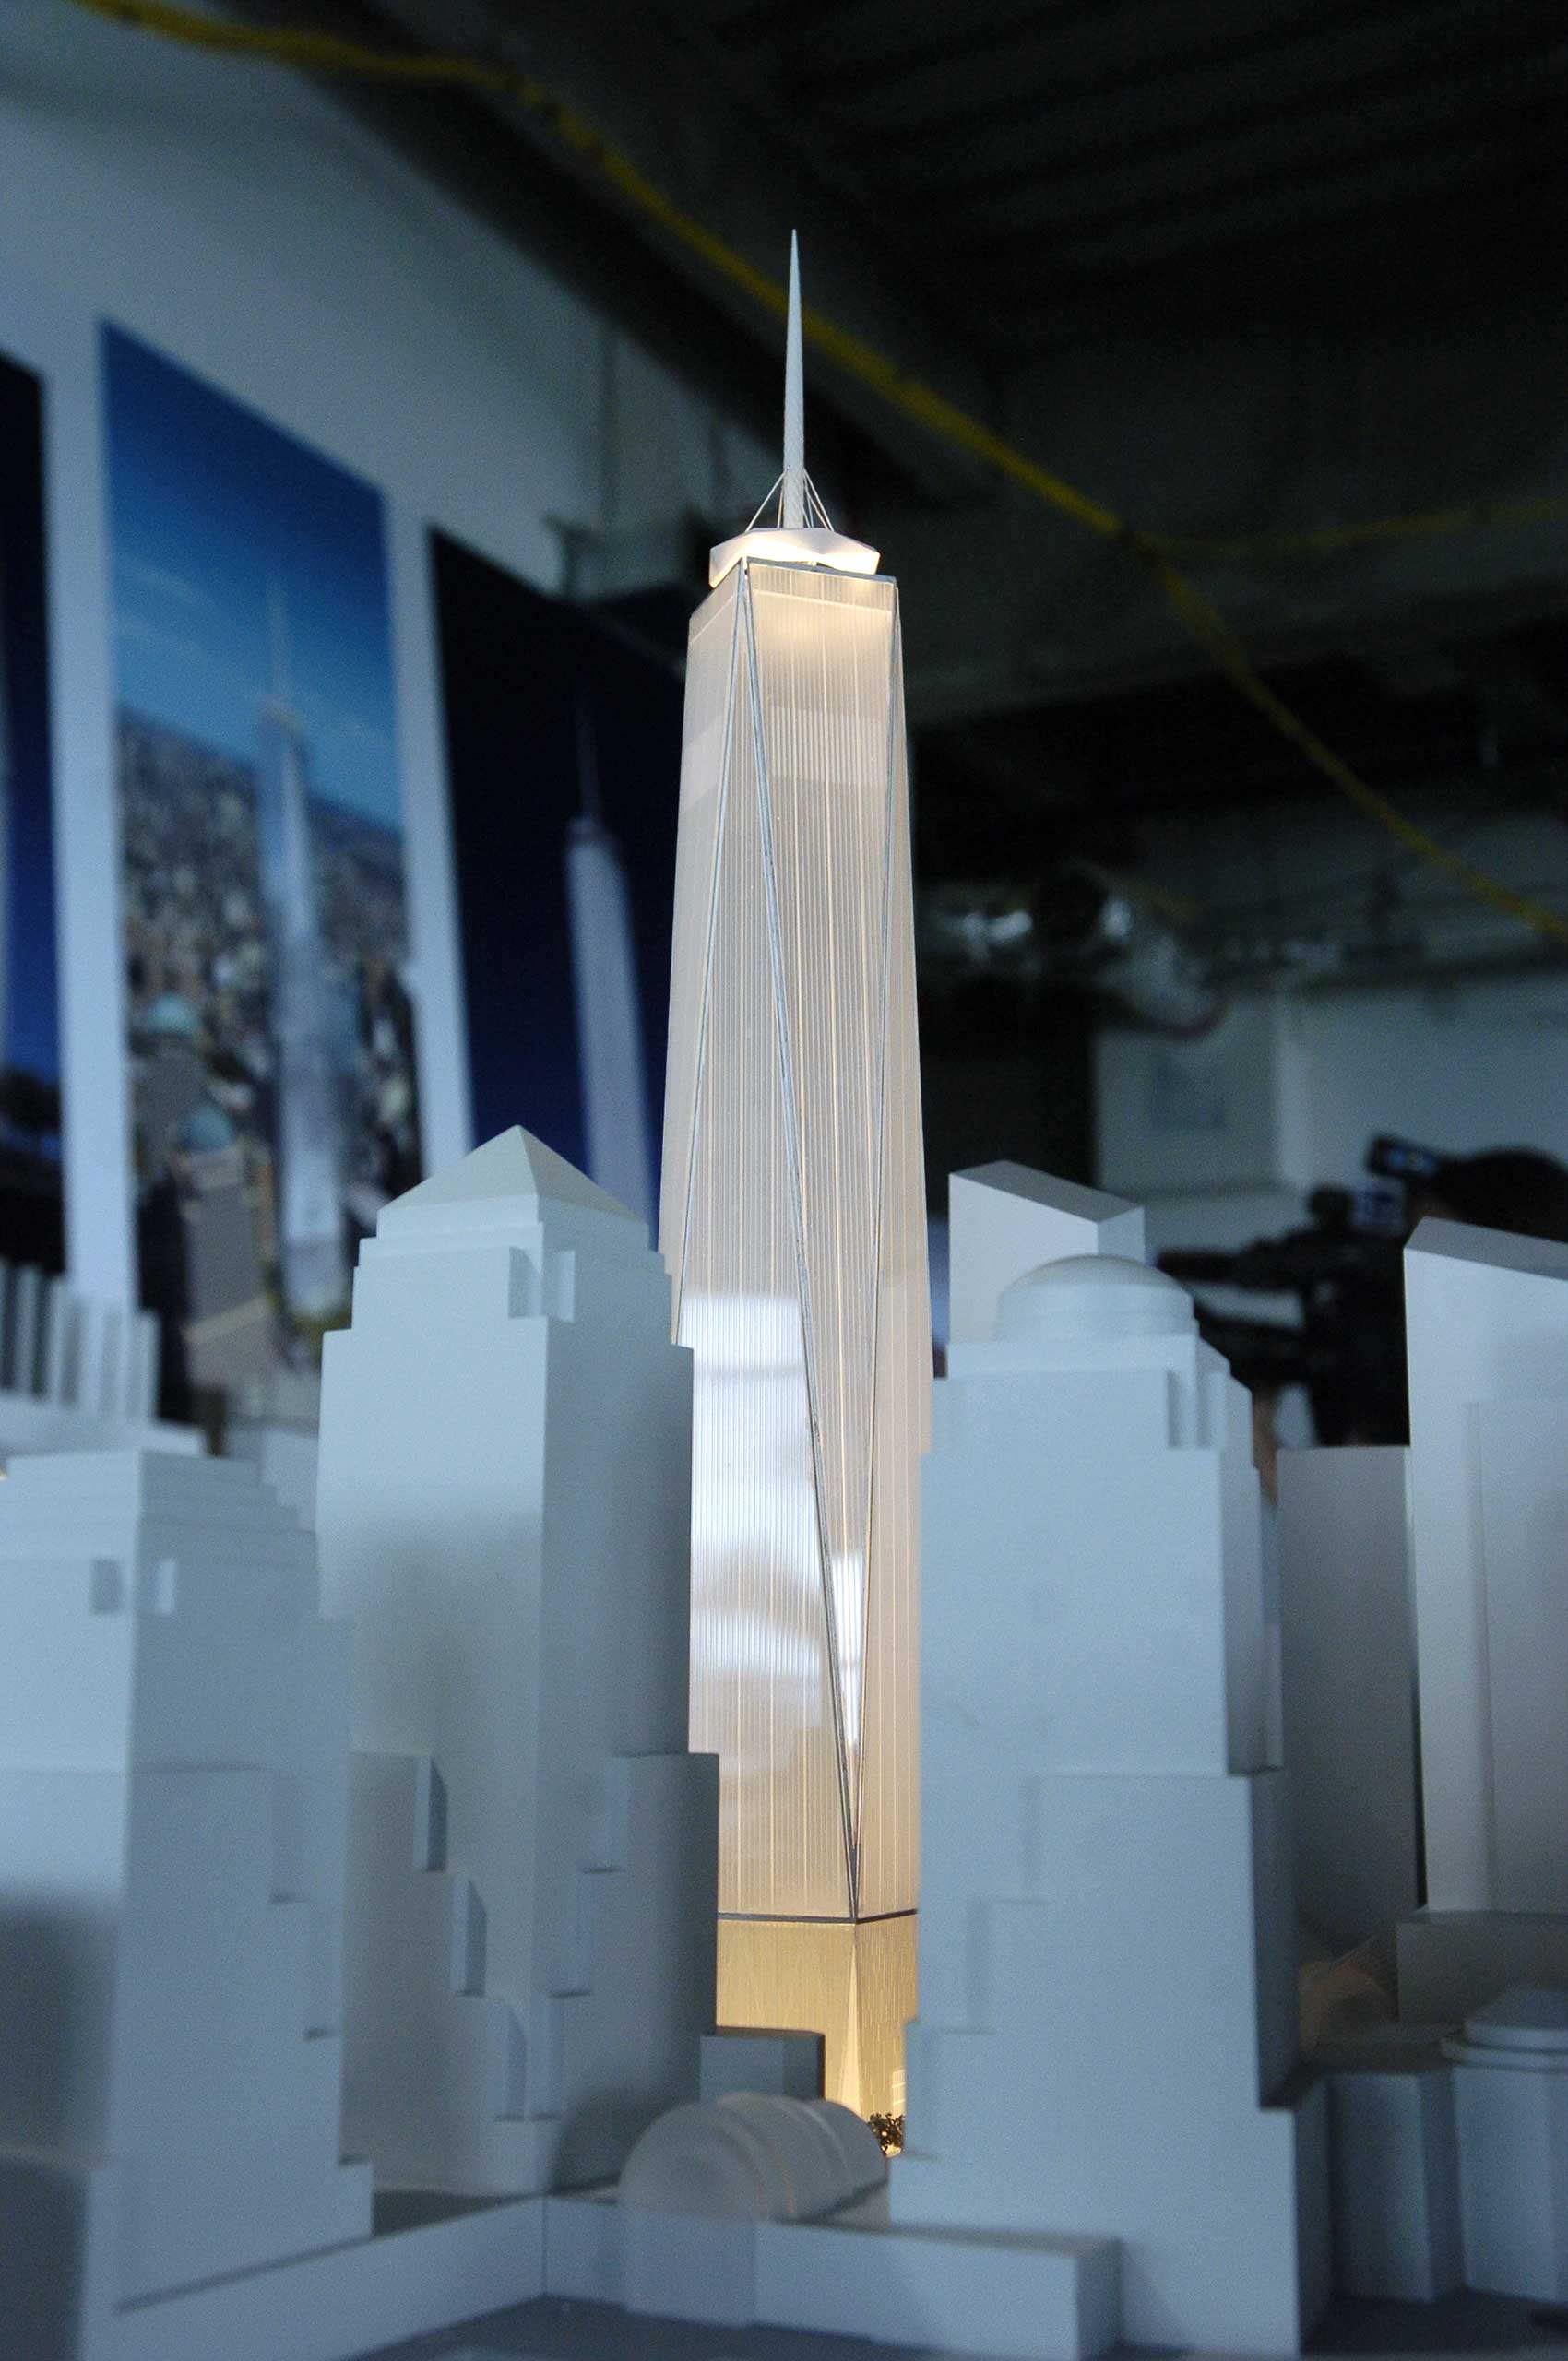 2006 A model of the Freedom Tower on display at the American Institute of Architects (AIA) Design Awards luncheon on June 28, 2006.